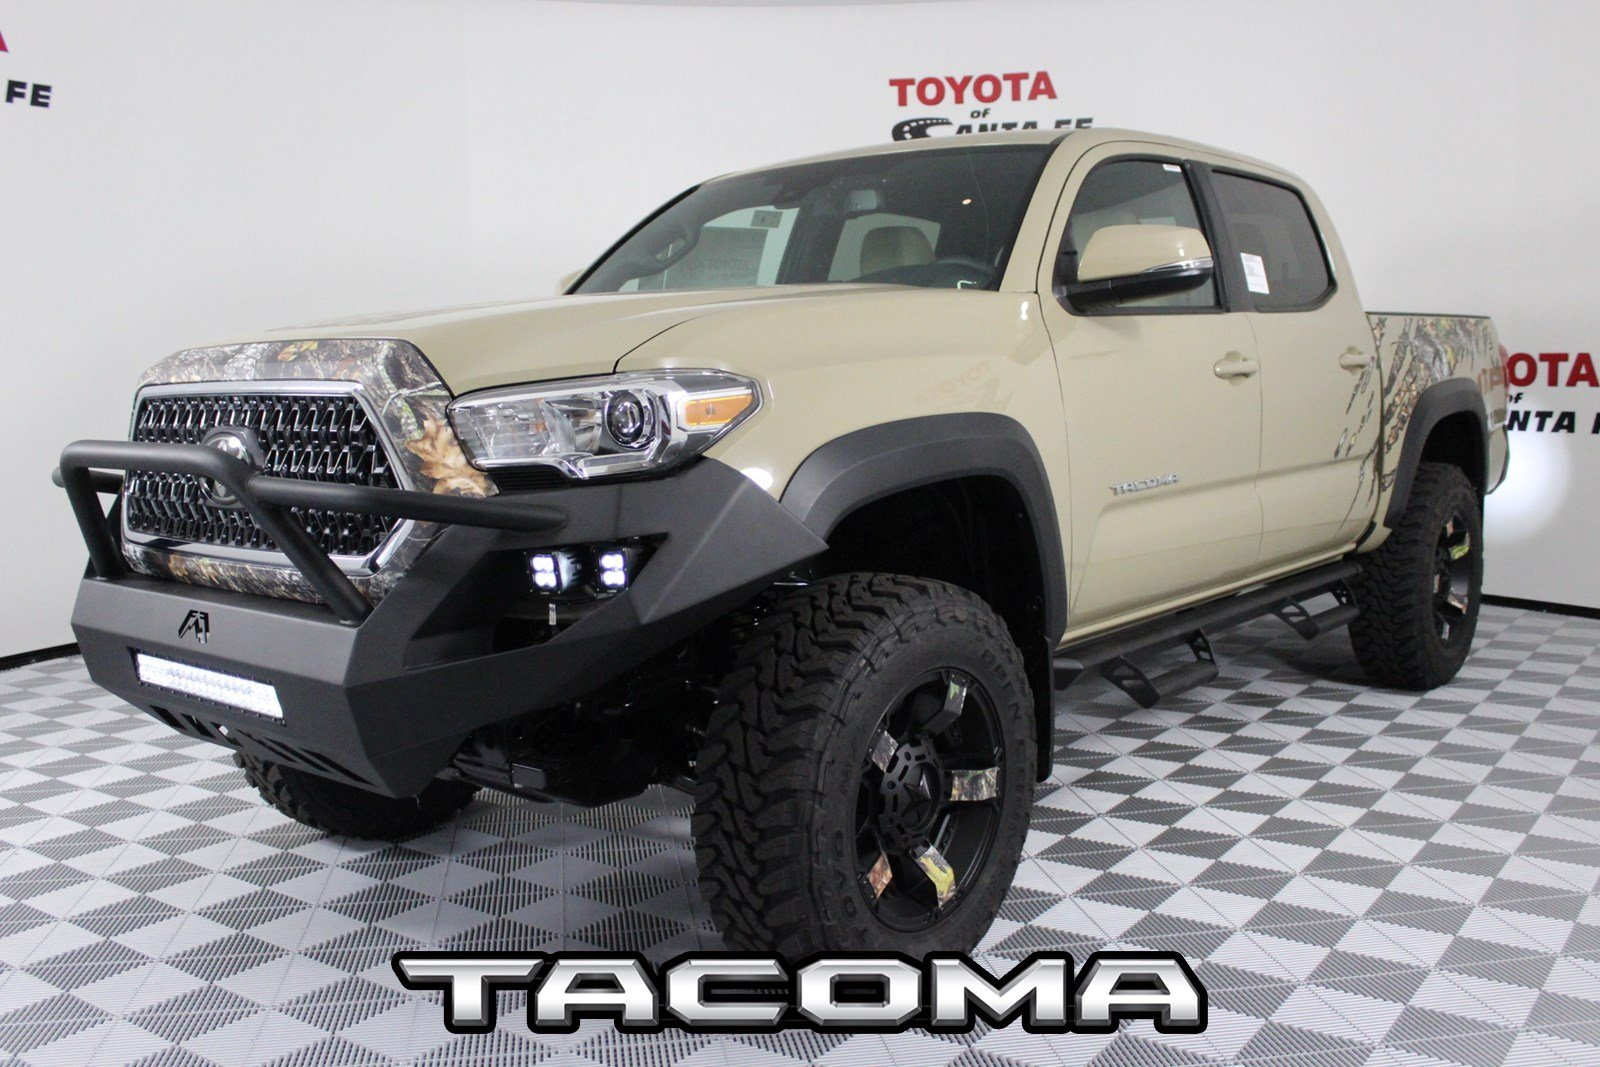 New 2018 Toyota Tacoma Trd Off Road Double Cab 5 Bed V6 4x4 At In Santa Fe Jm184348 Of